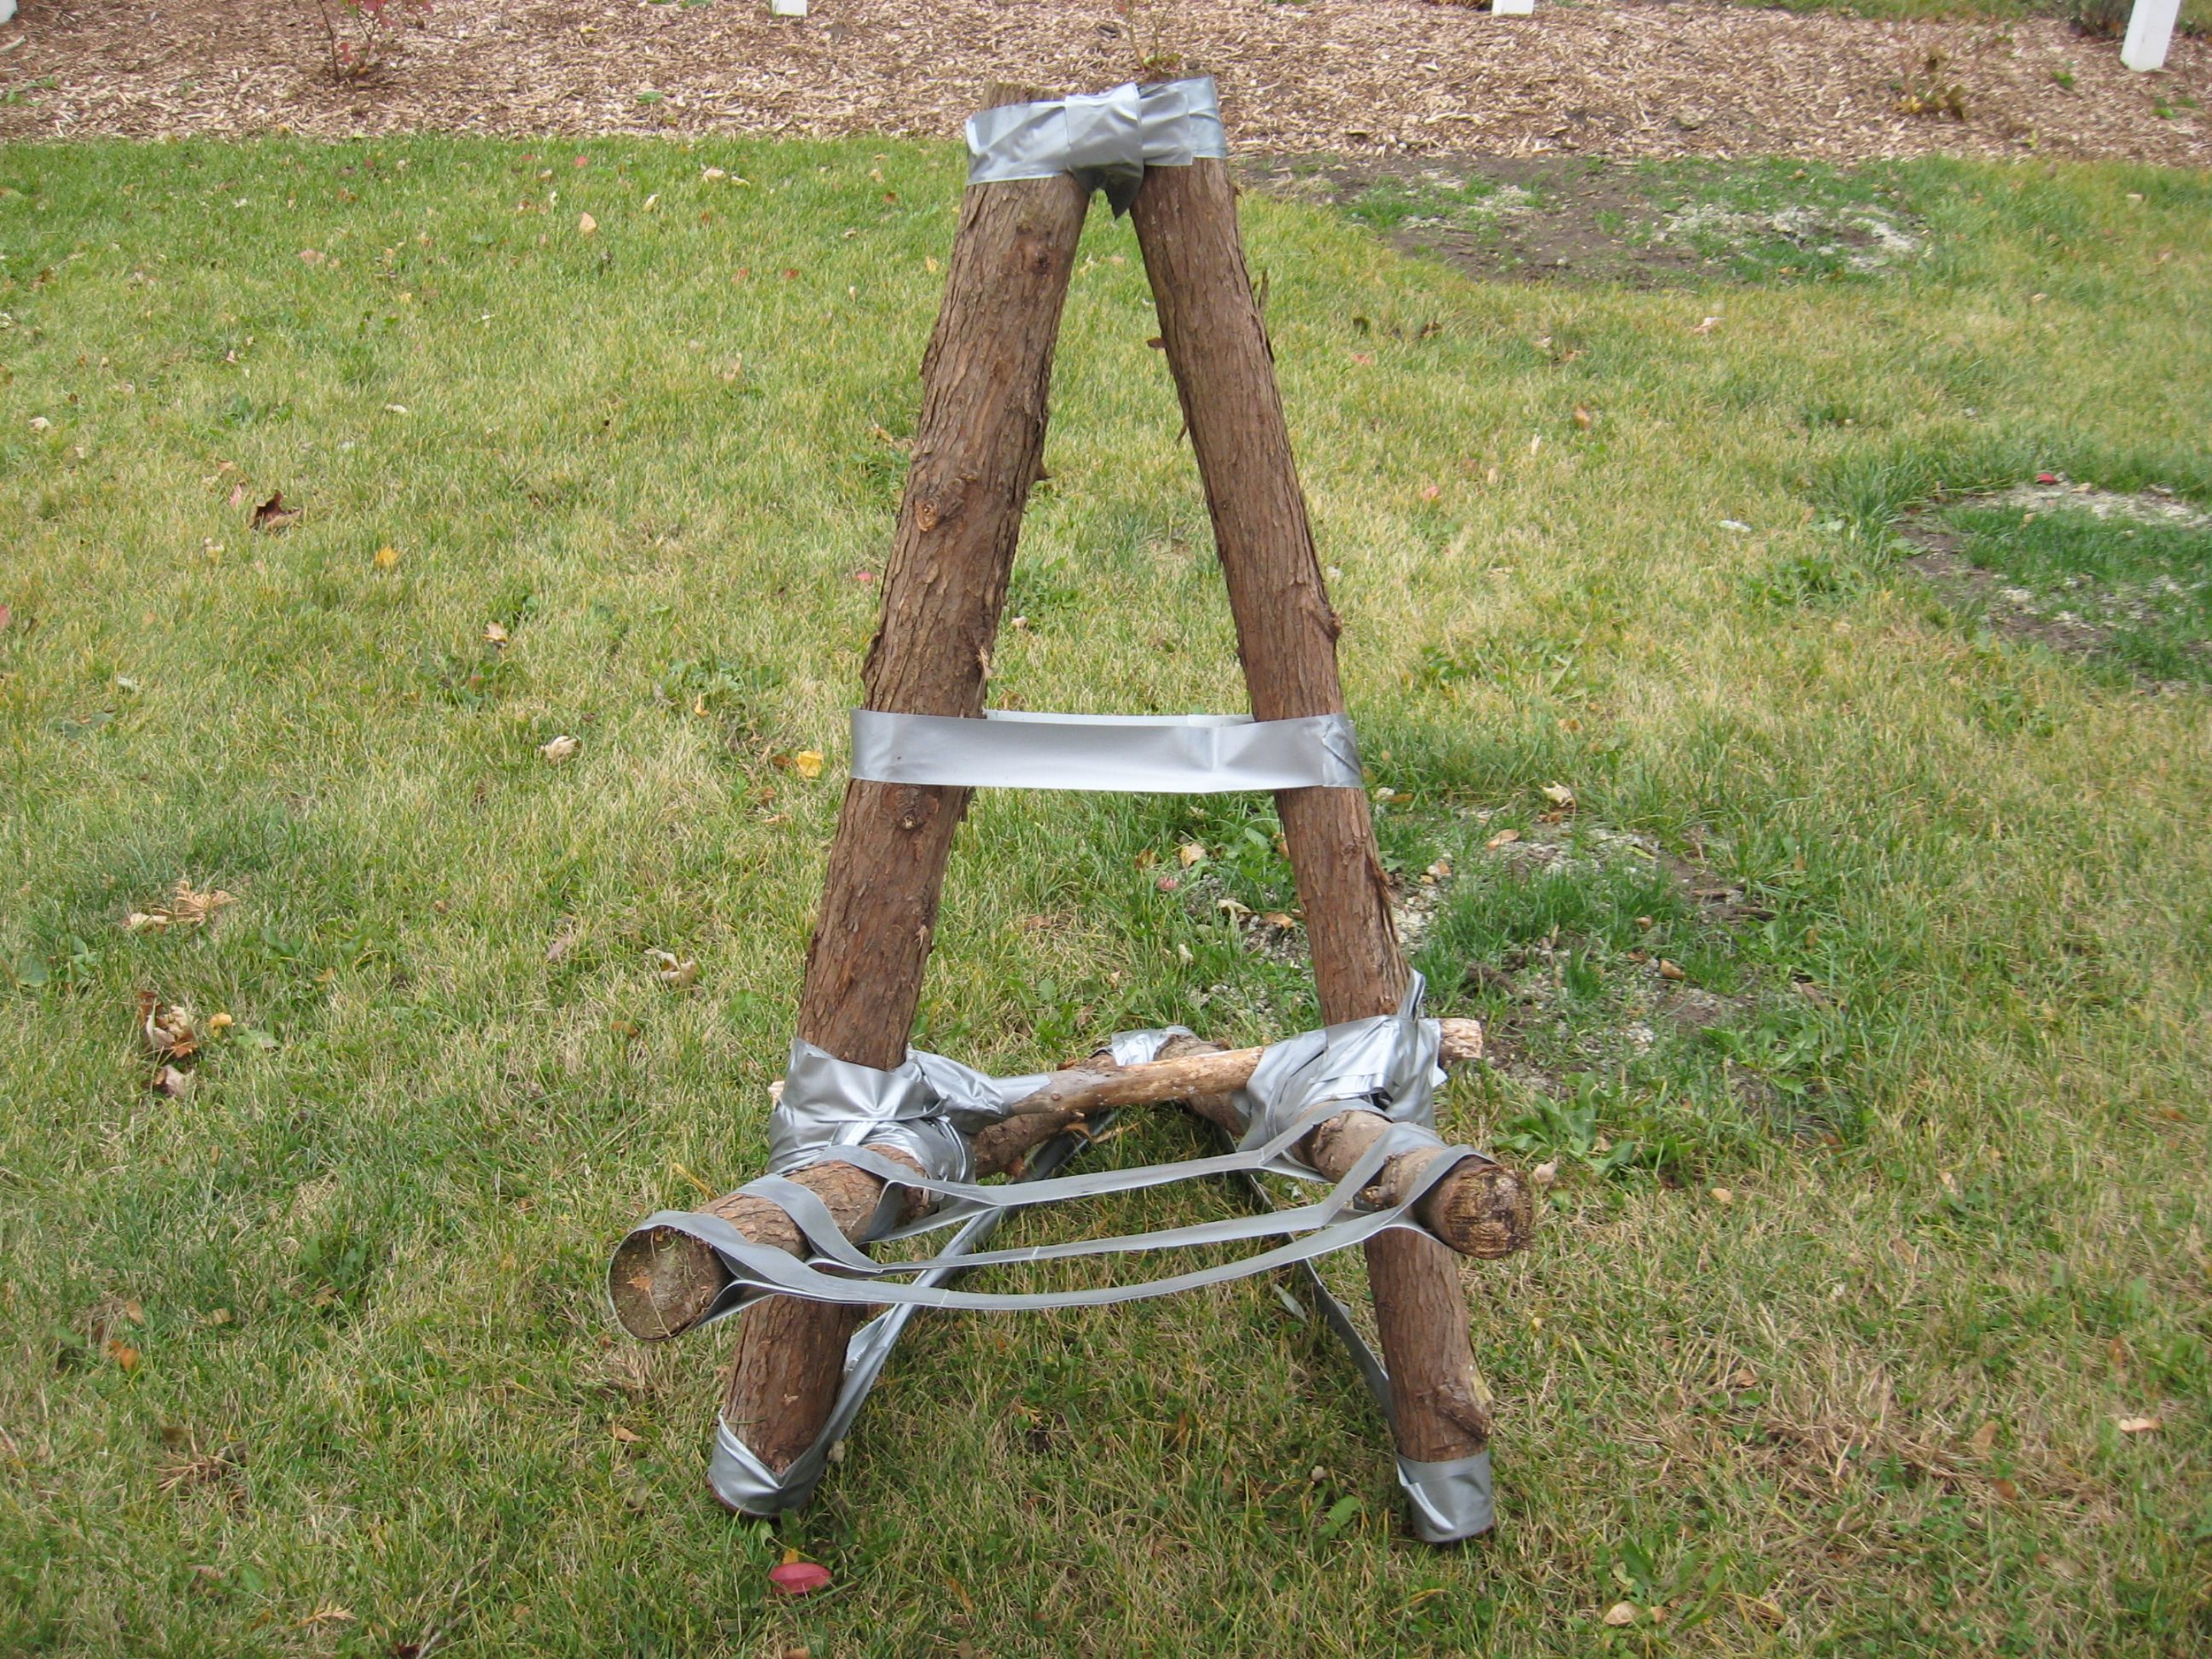 Duct tape camp chair